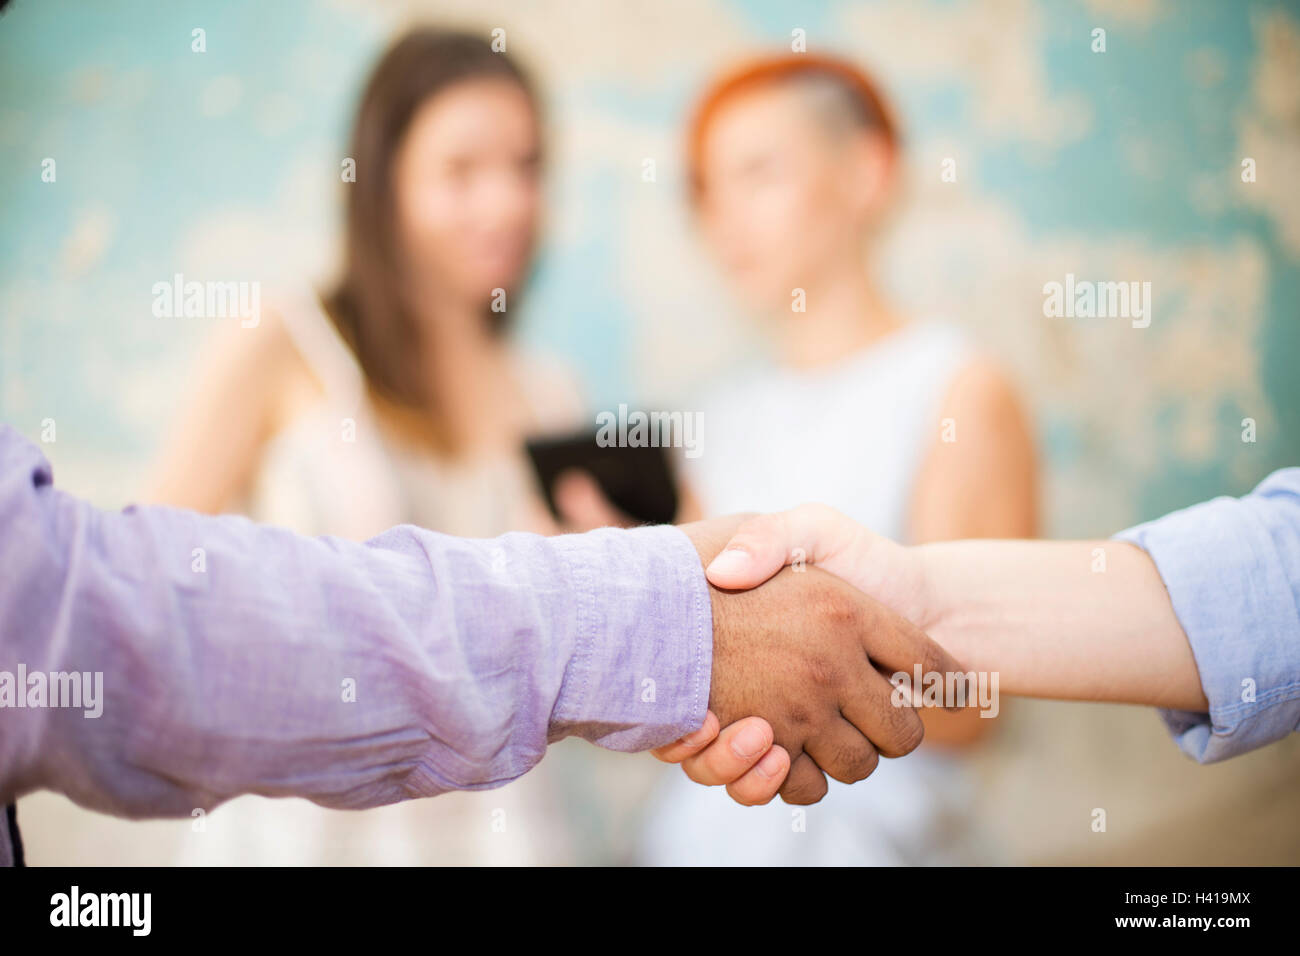 Closeup image of business partners making handshake in grunge office - Stock Image